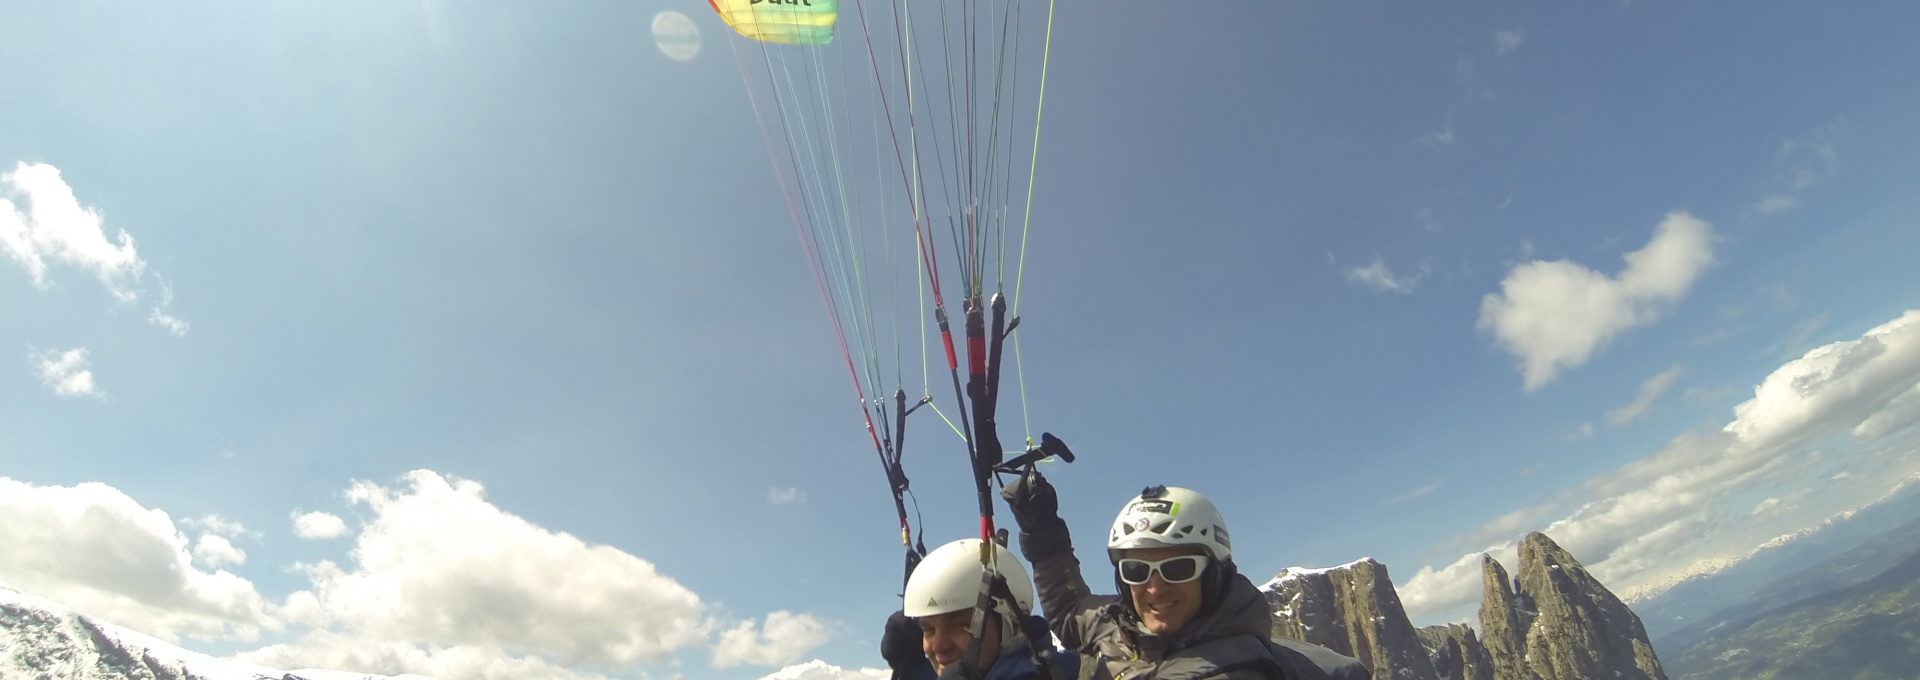 Types of flights - Paragliding Tandem Val Gardena - Val